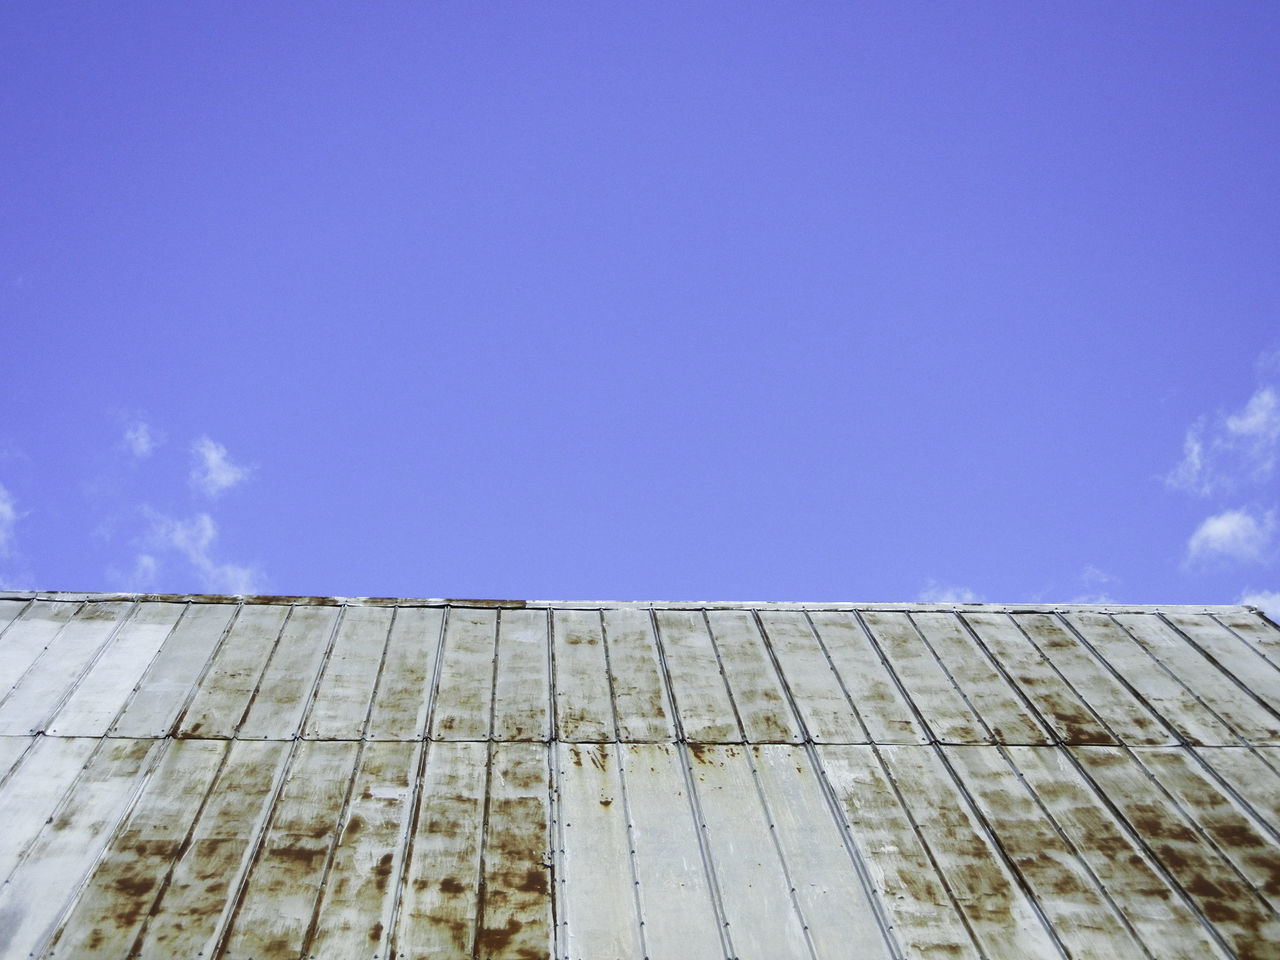 Worn urban roof scape under a bright blue sky. Architecture Blue Bright Building Built Structure City Cityscape Clear Sky Day Low Angle View No People Outdoors Roof Roofline Rust Urban